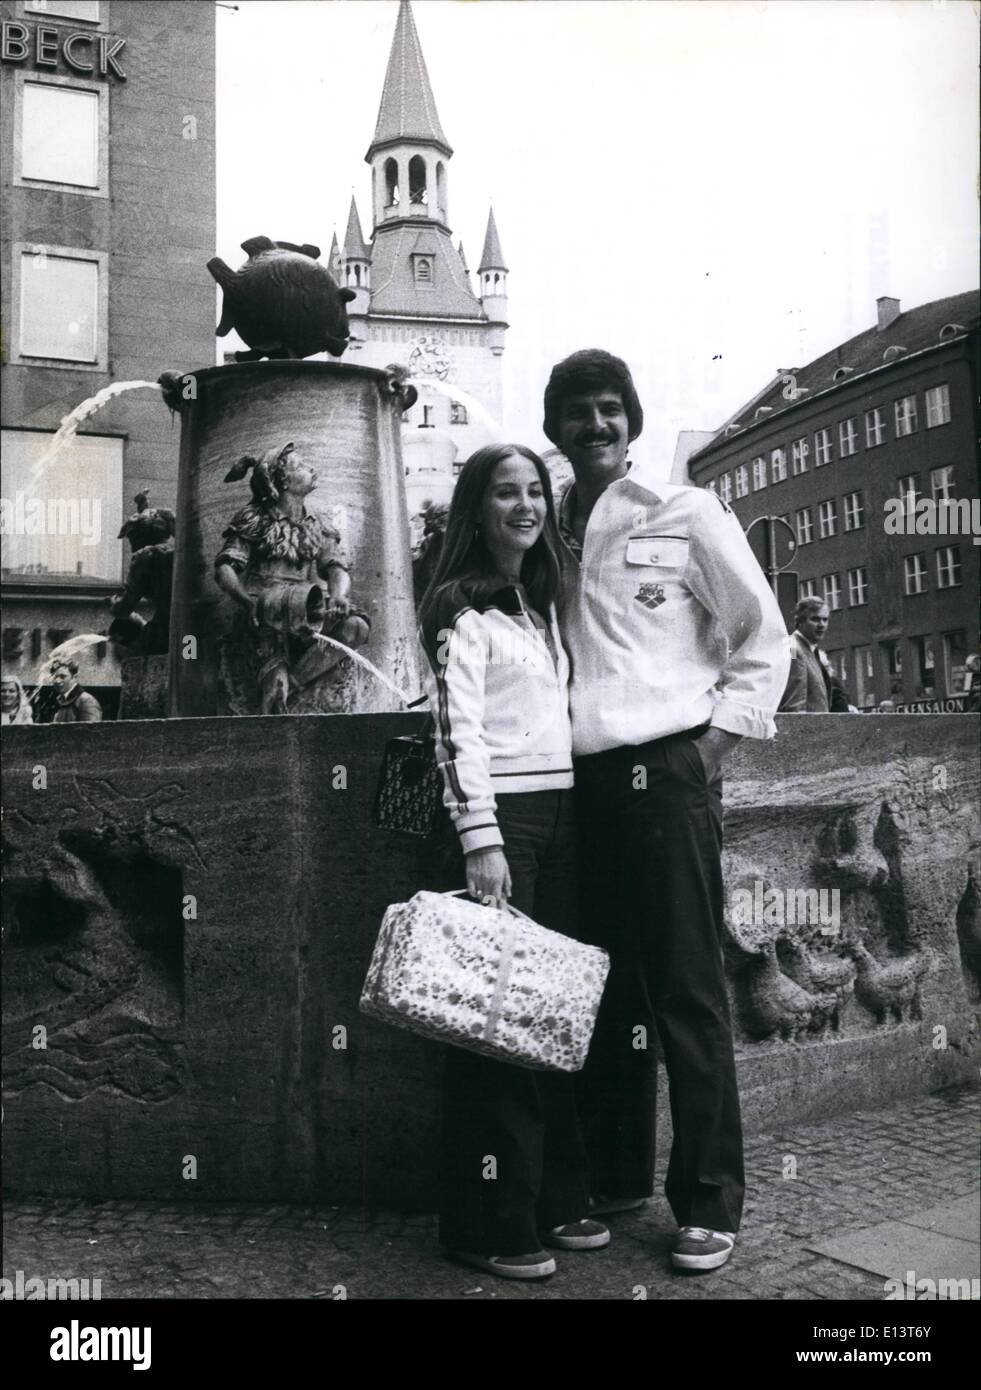 Mar. 27, 2012 - Mark Spitz In The Federal Republic Of Germany 7 gold medals... Mark Spitz got in Munich 1972 at the Olymic Games, - now he came back to the town of his triumphs. With his wife Susan he visited remarkable places in Munich and he trainined with students in the Olympic Swimming Hall. And before he travelled to an other German town, his fondest with also came true. He got the starting -block on which he in 1972 celebrated his greatest achievements, and which he now brings to his home California. Photo Shows:- Mark Spitz and his wife Sus visit in Munich. - Stock Image